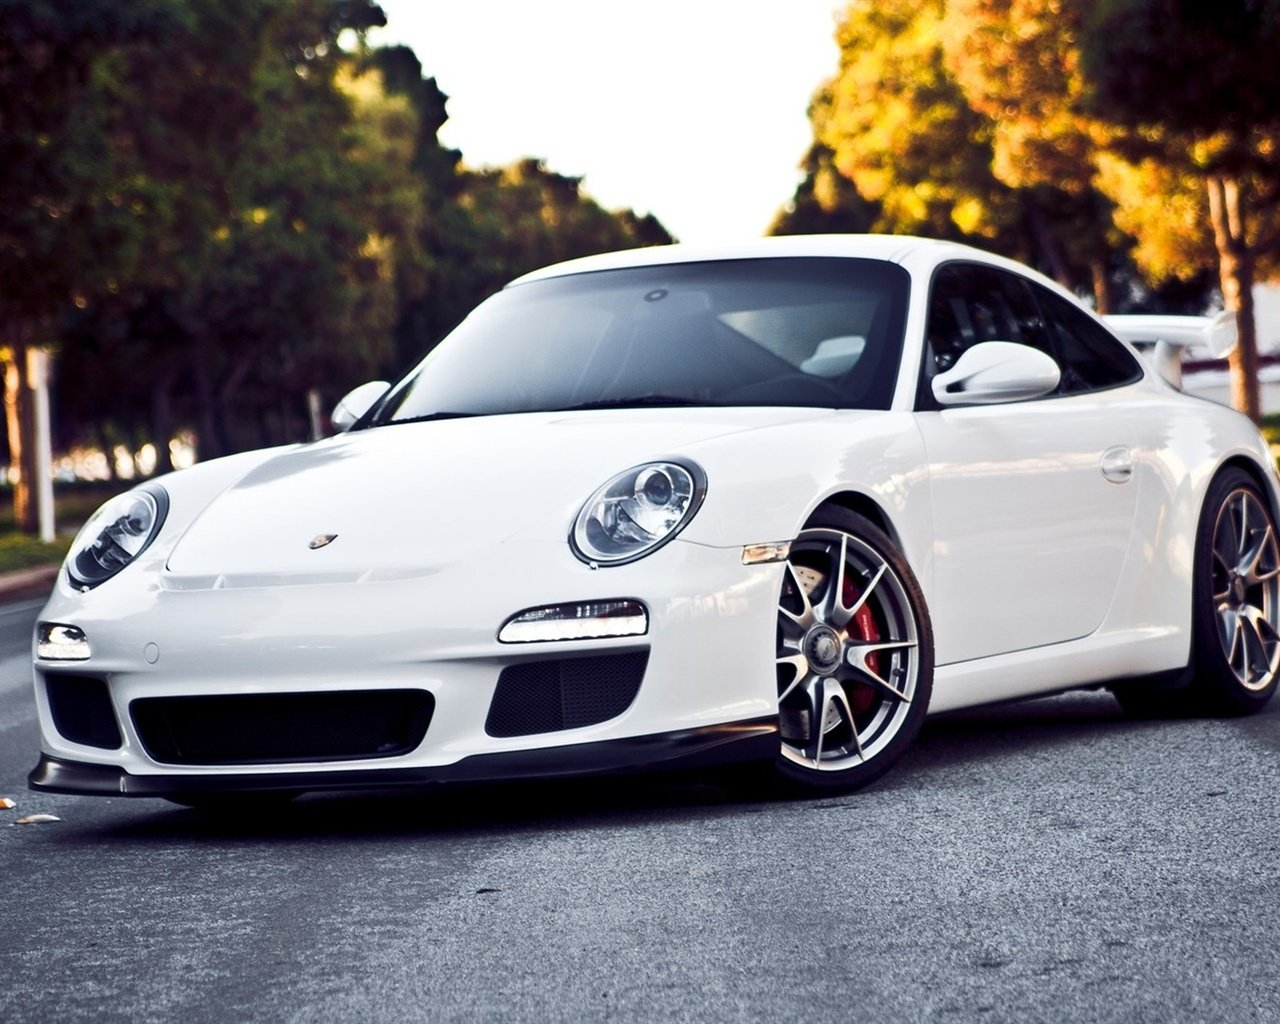 911 GT3 white supercar Wallpaper 1280x1024 resolution wallpaper 1280x1024